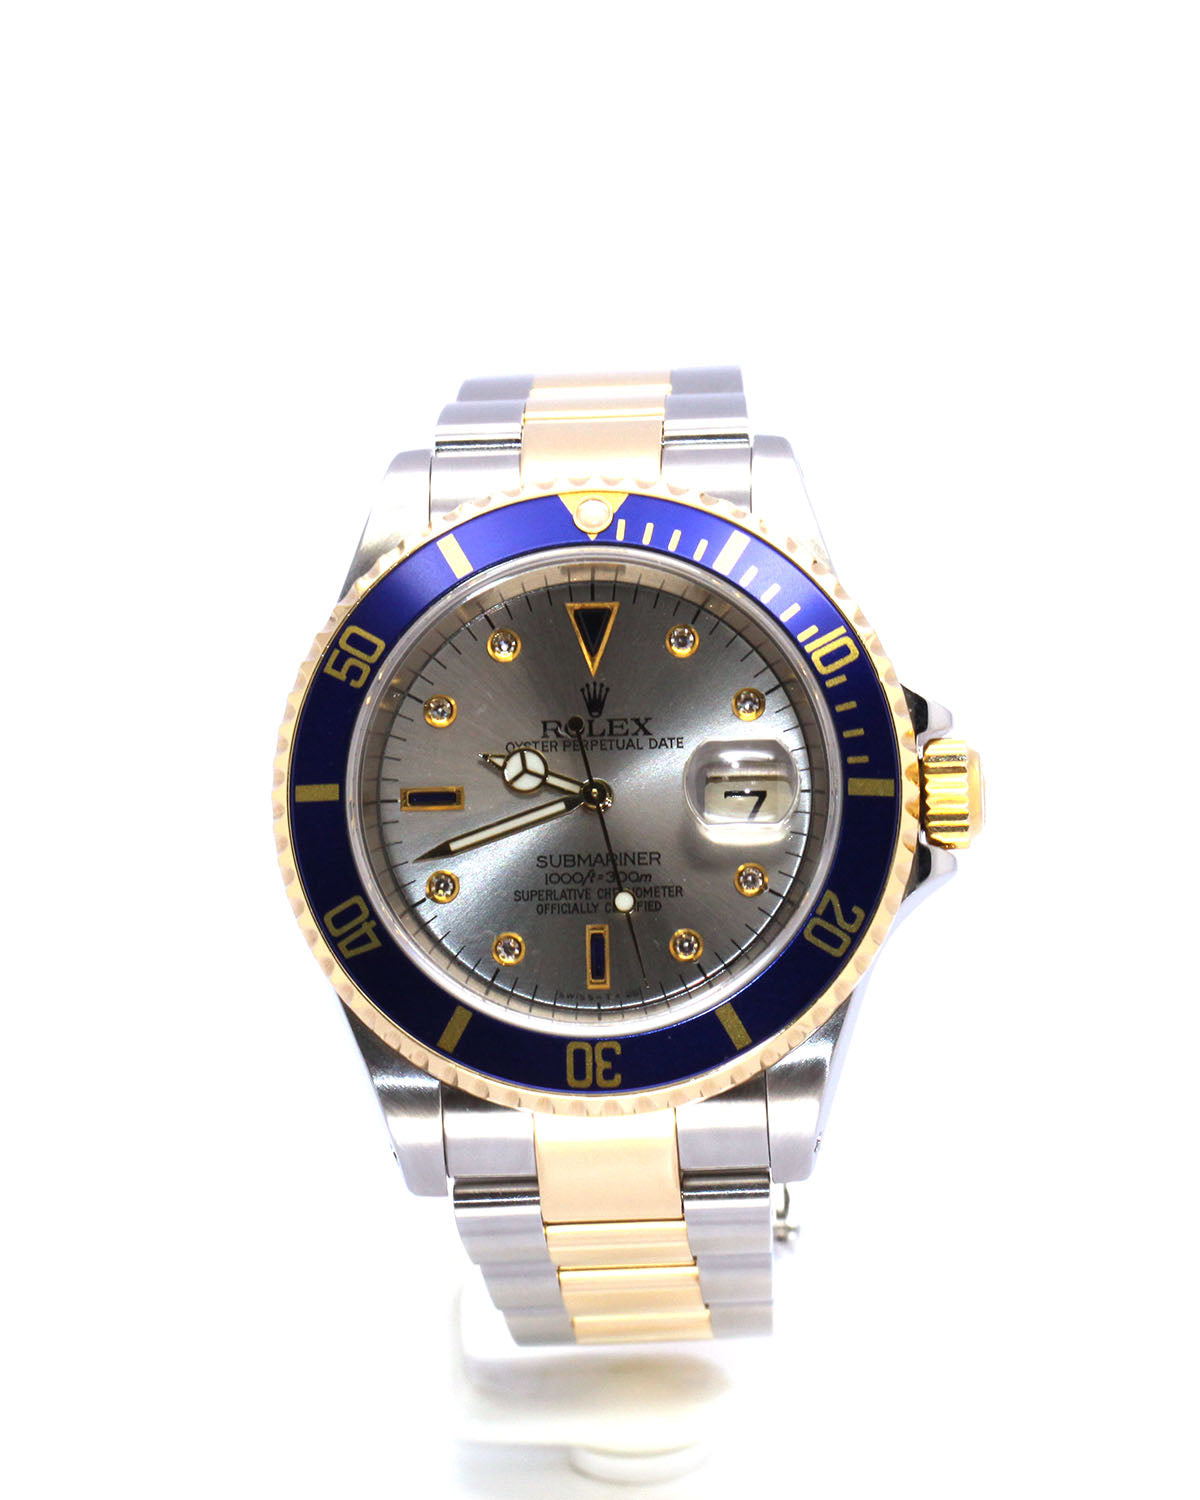 ROLEX SUBMARINER 16613 SLATE SERTI DIAL WITH DIAMONDS & SAPPHIRES GOLD THRU CLASP